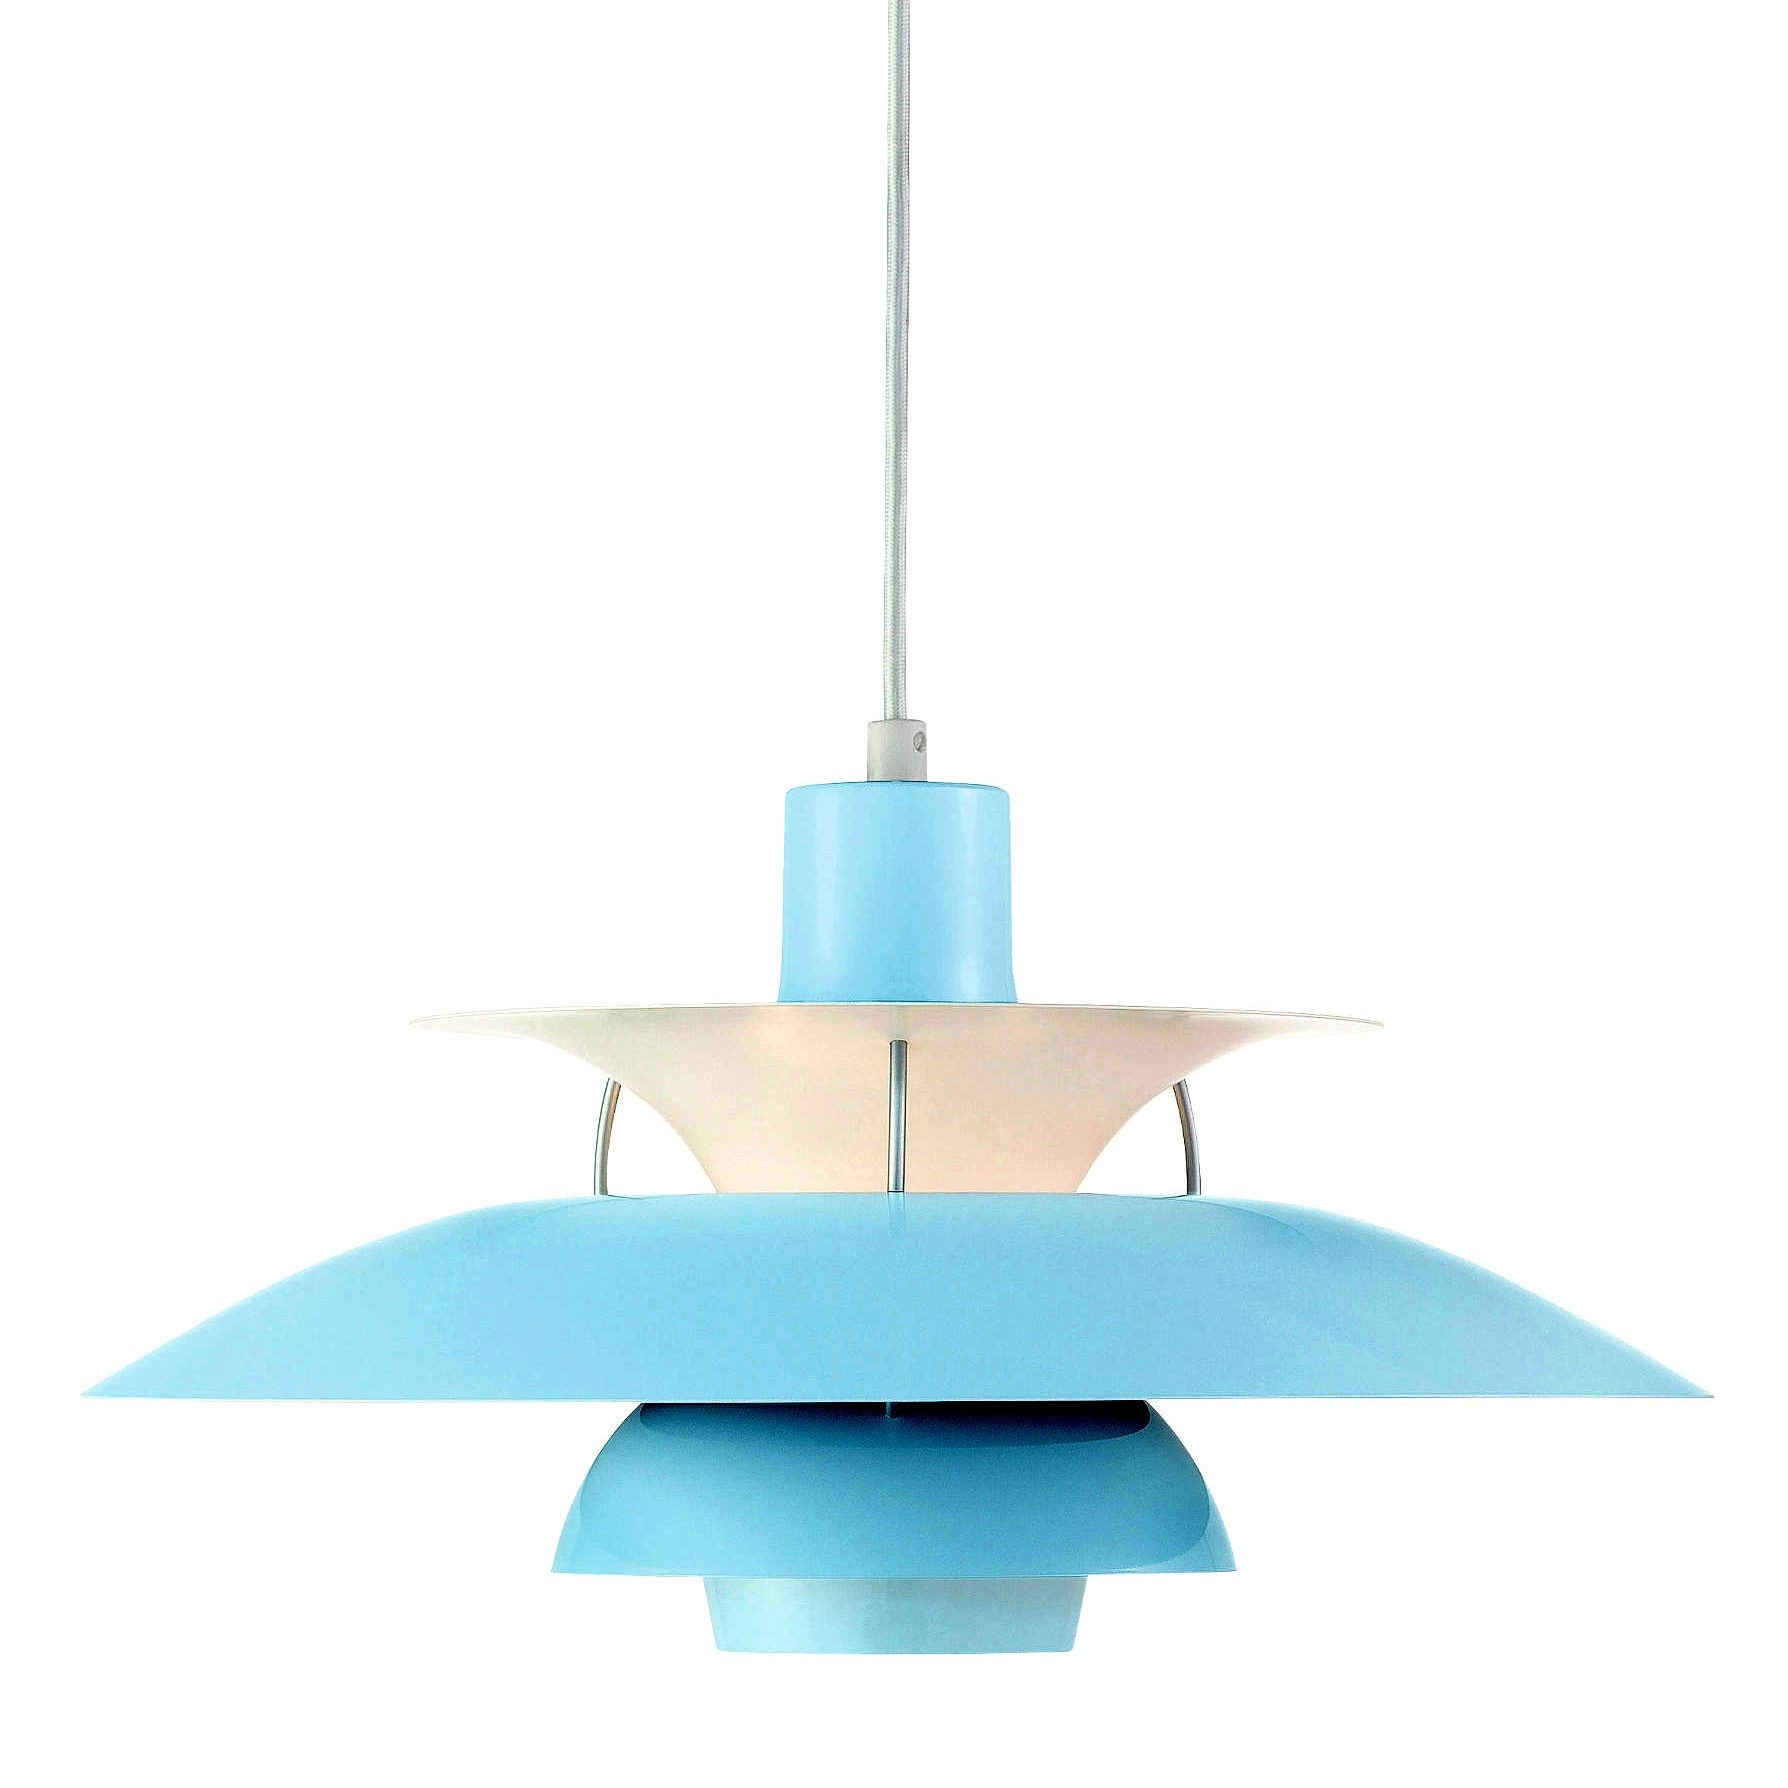 CLEARANCE - Louis Poulsen PH50 Pendant Lamp - Mint Blue